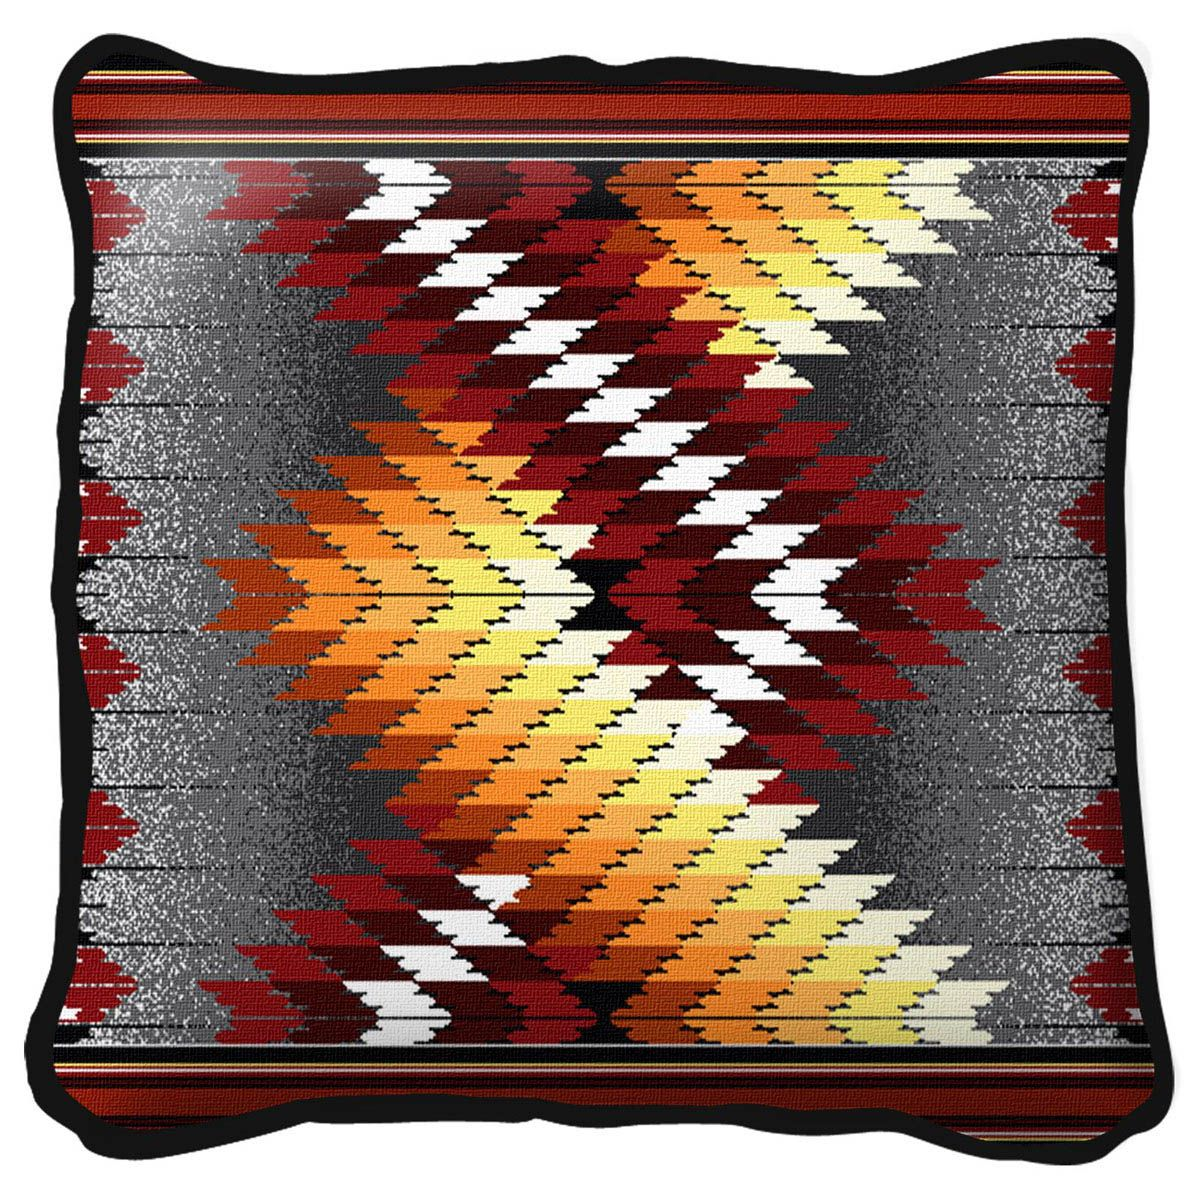 Whirlwind Fire Pillow